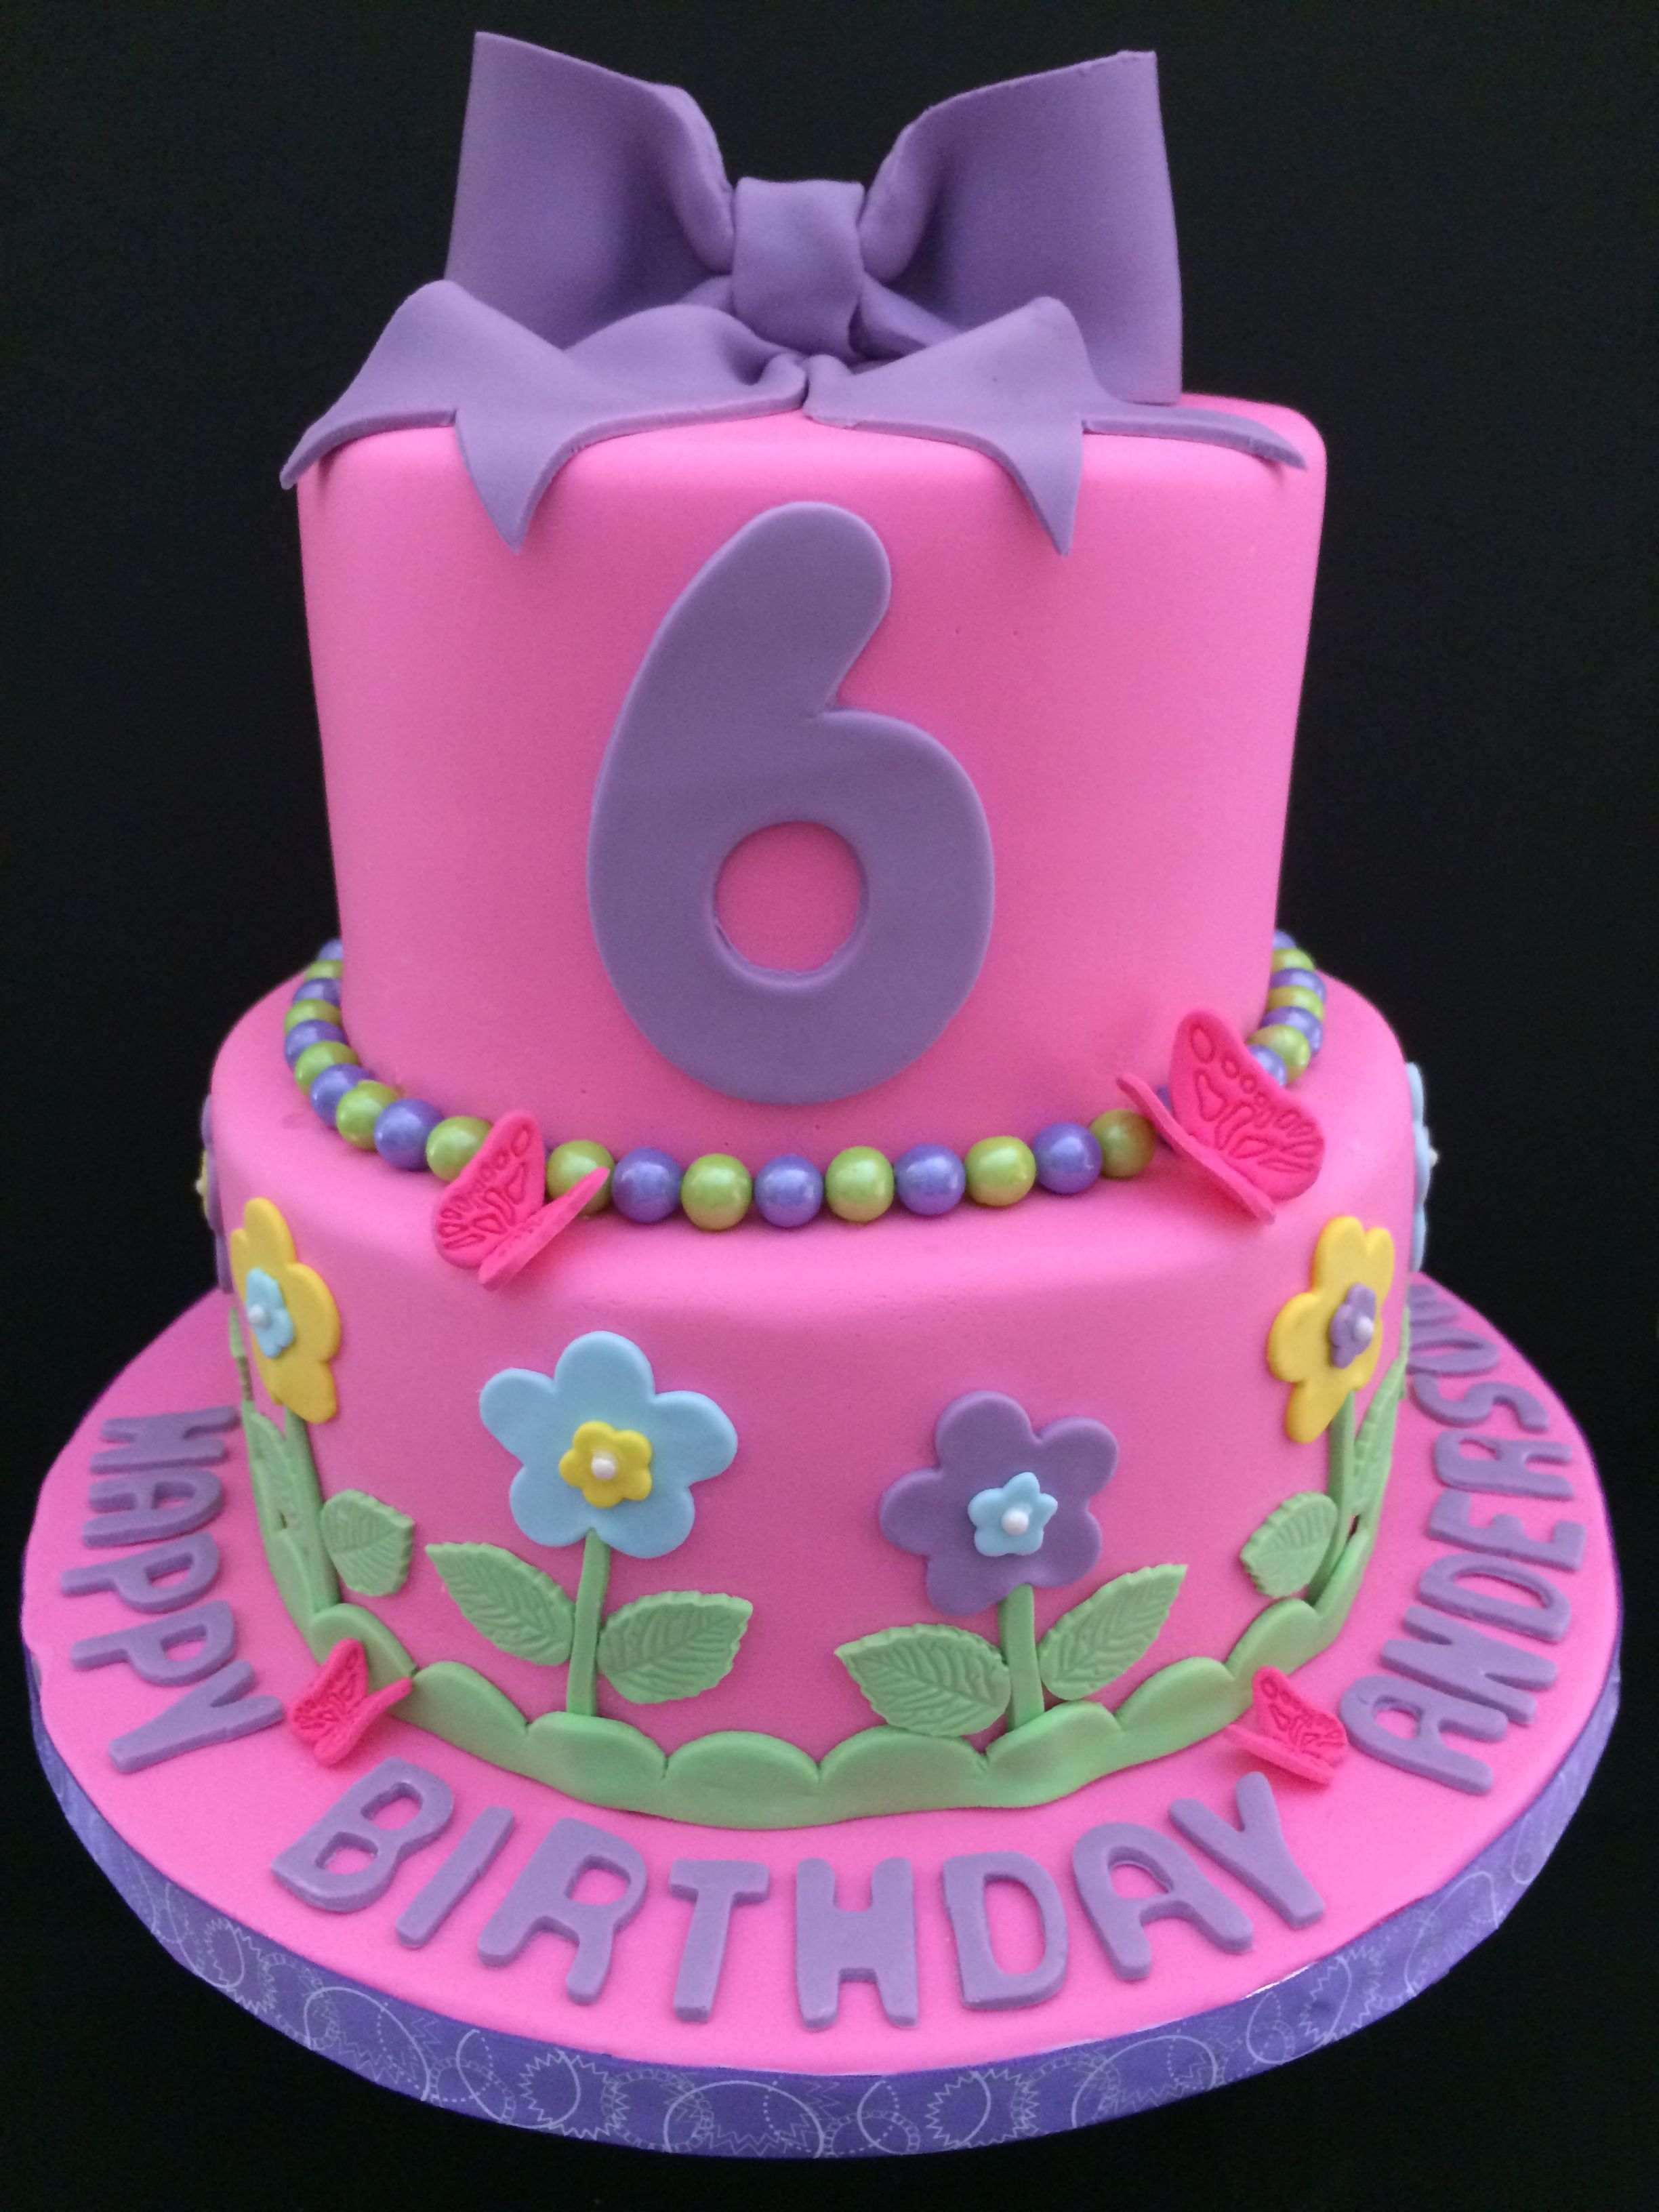 Birthday Cake For A 6 Year Old Girl Cakes In 2018 Pinterest